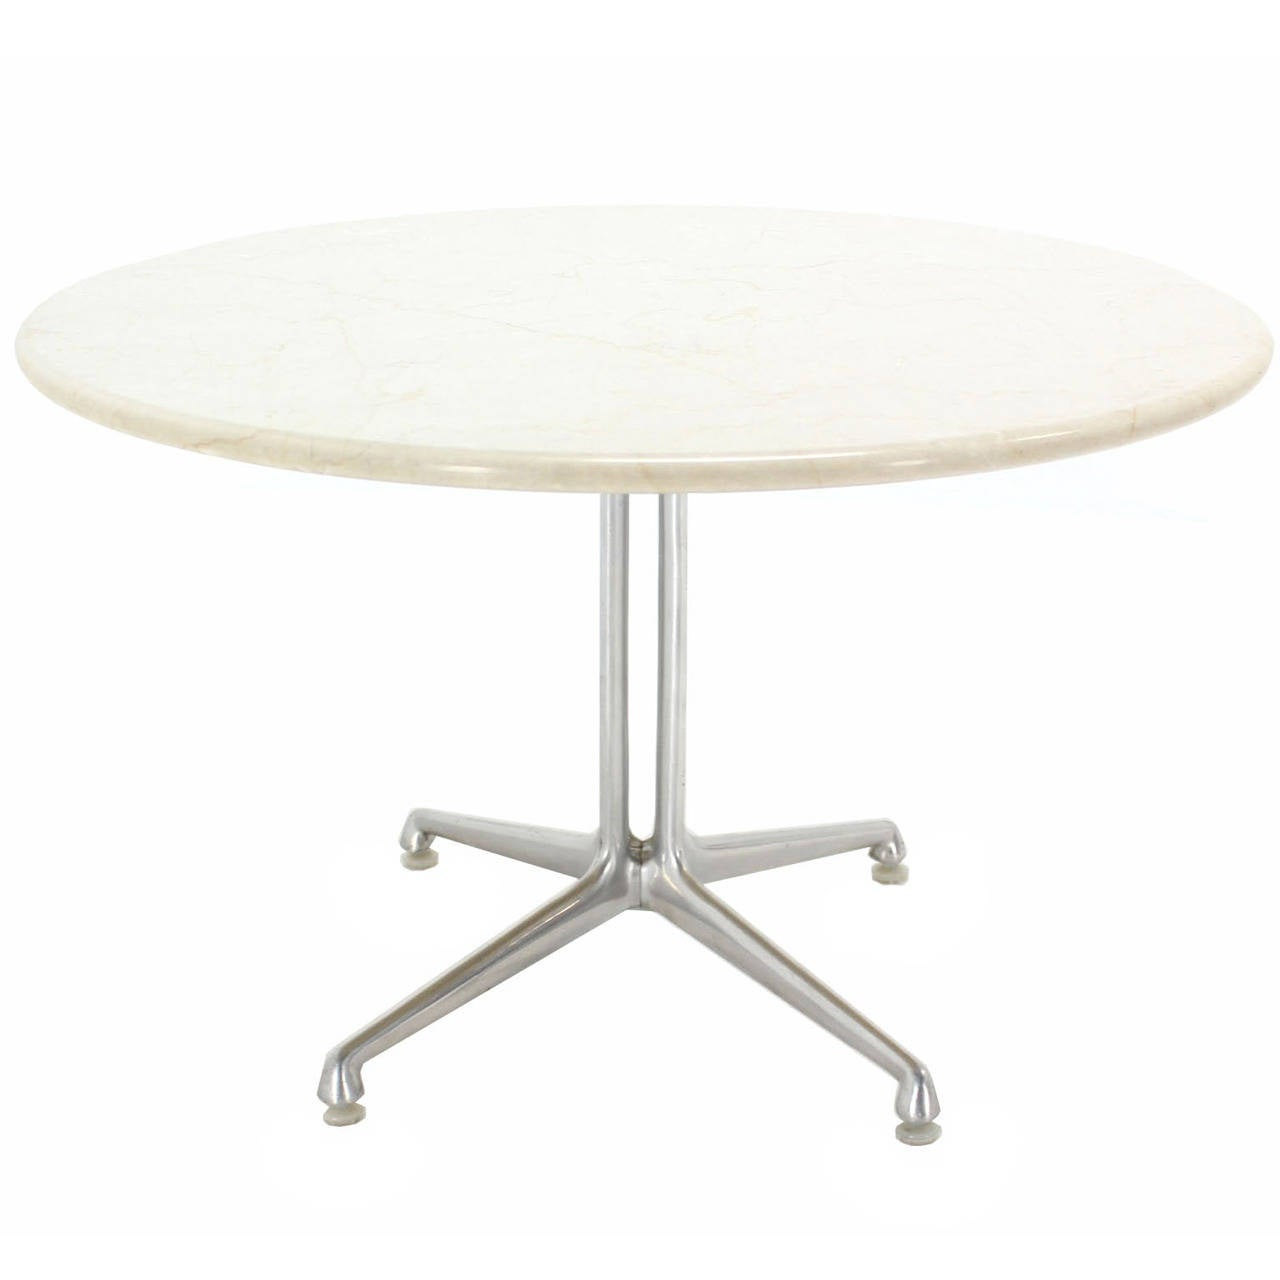 La fonda charles eames white marble top coffee table at White marble coffee table